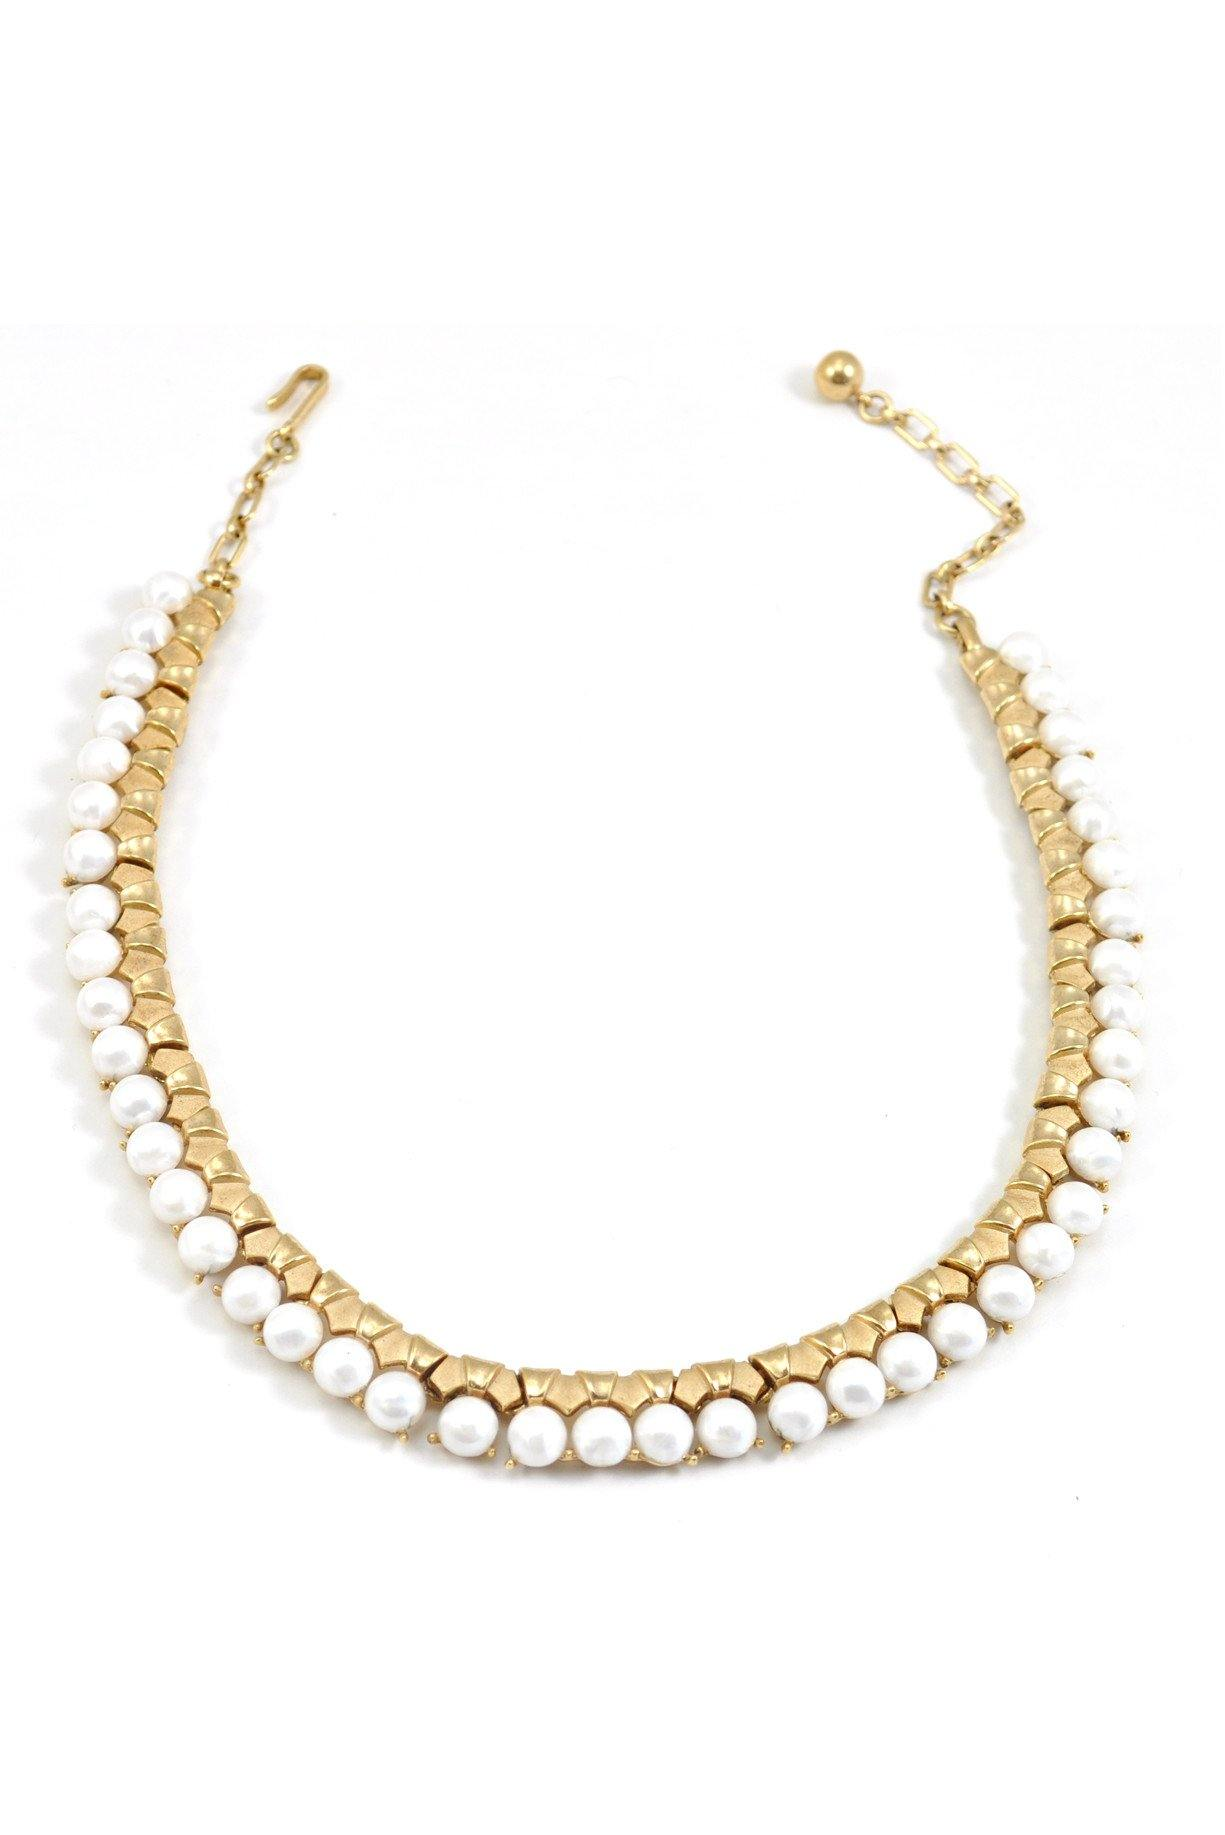 50's Trifari Pearl Choker Necklace